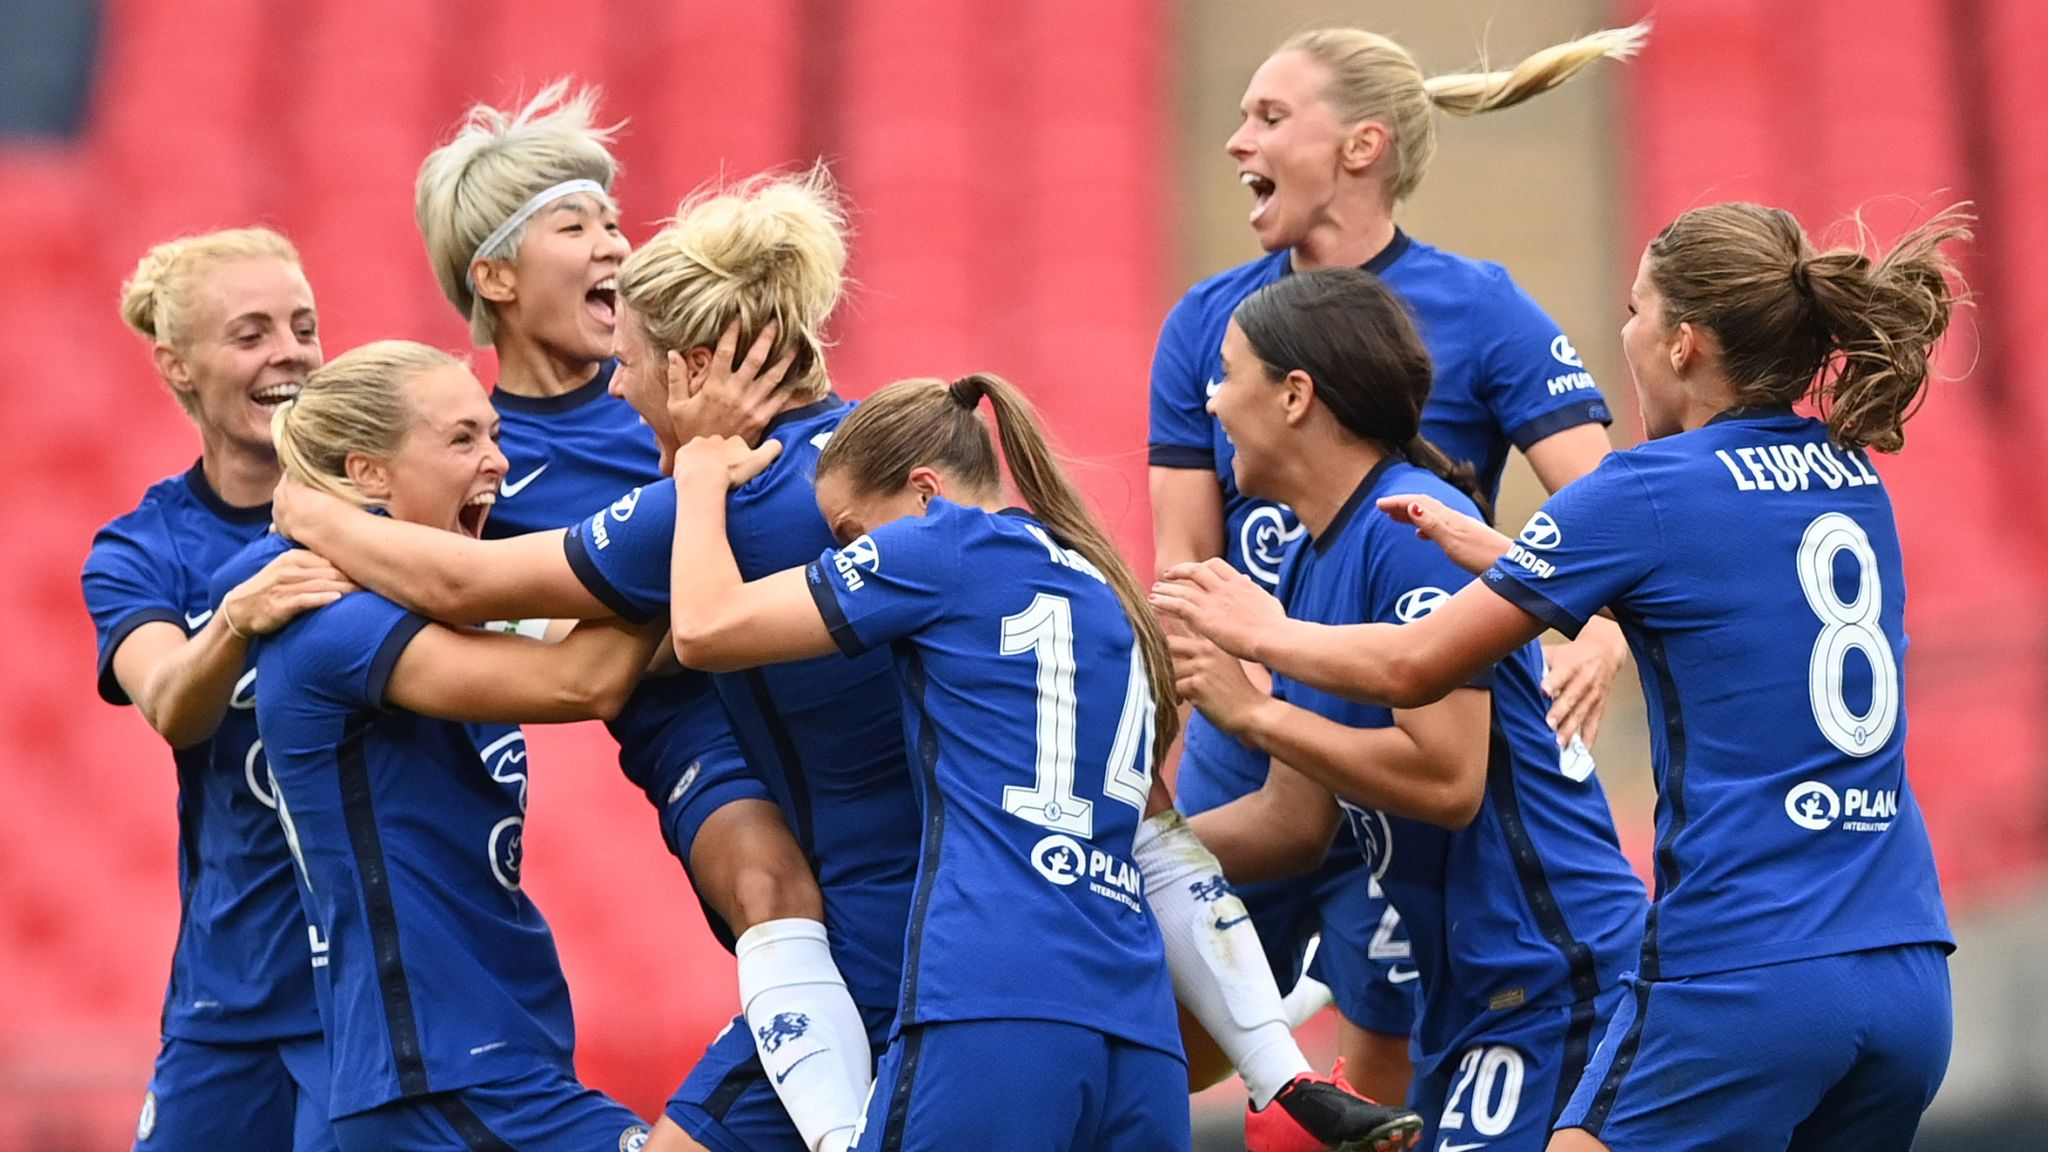 Womens champions league betting previews in game live betting